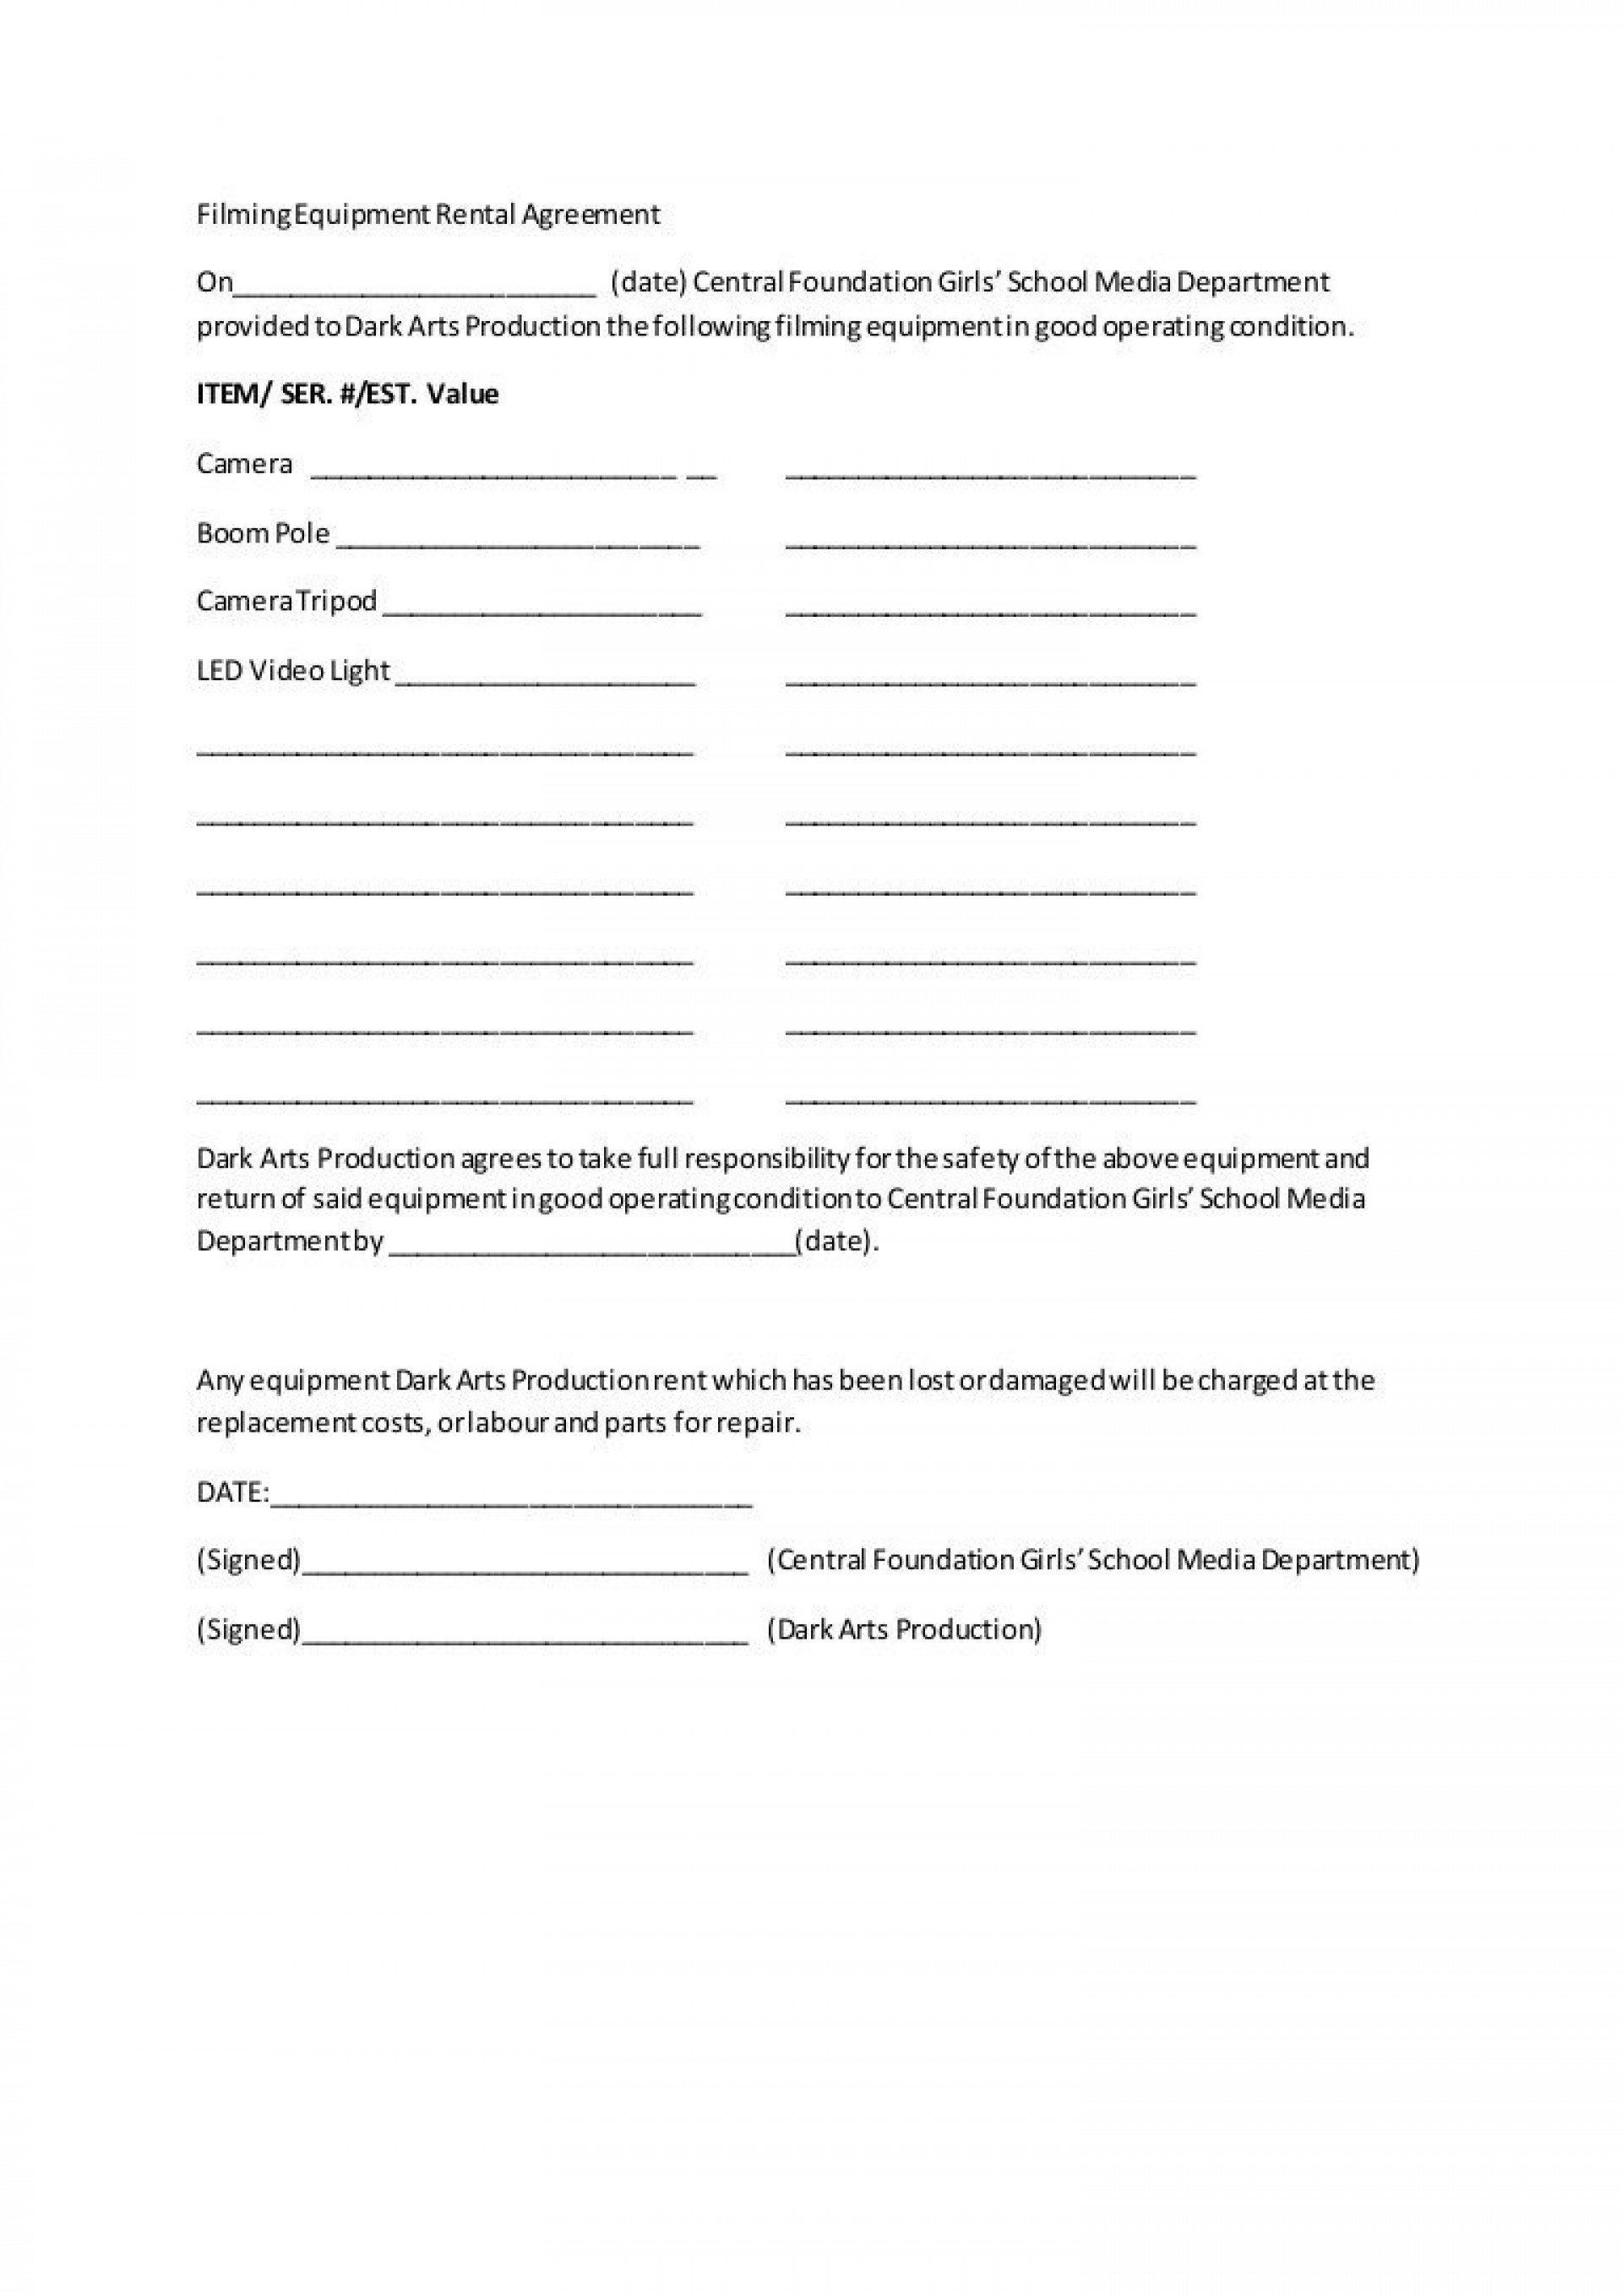 008 Best Equipment Rental Agreement Template Concept  Canada Free South Africa Pdf1920